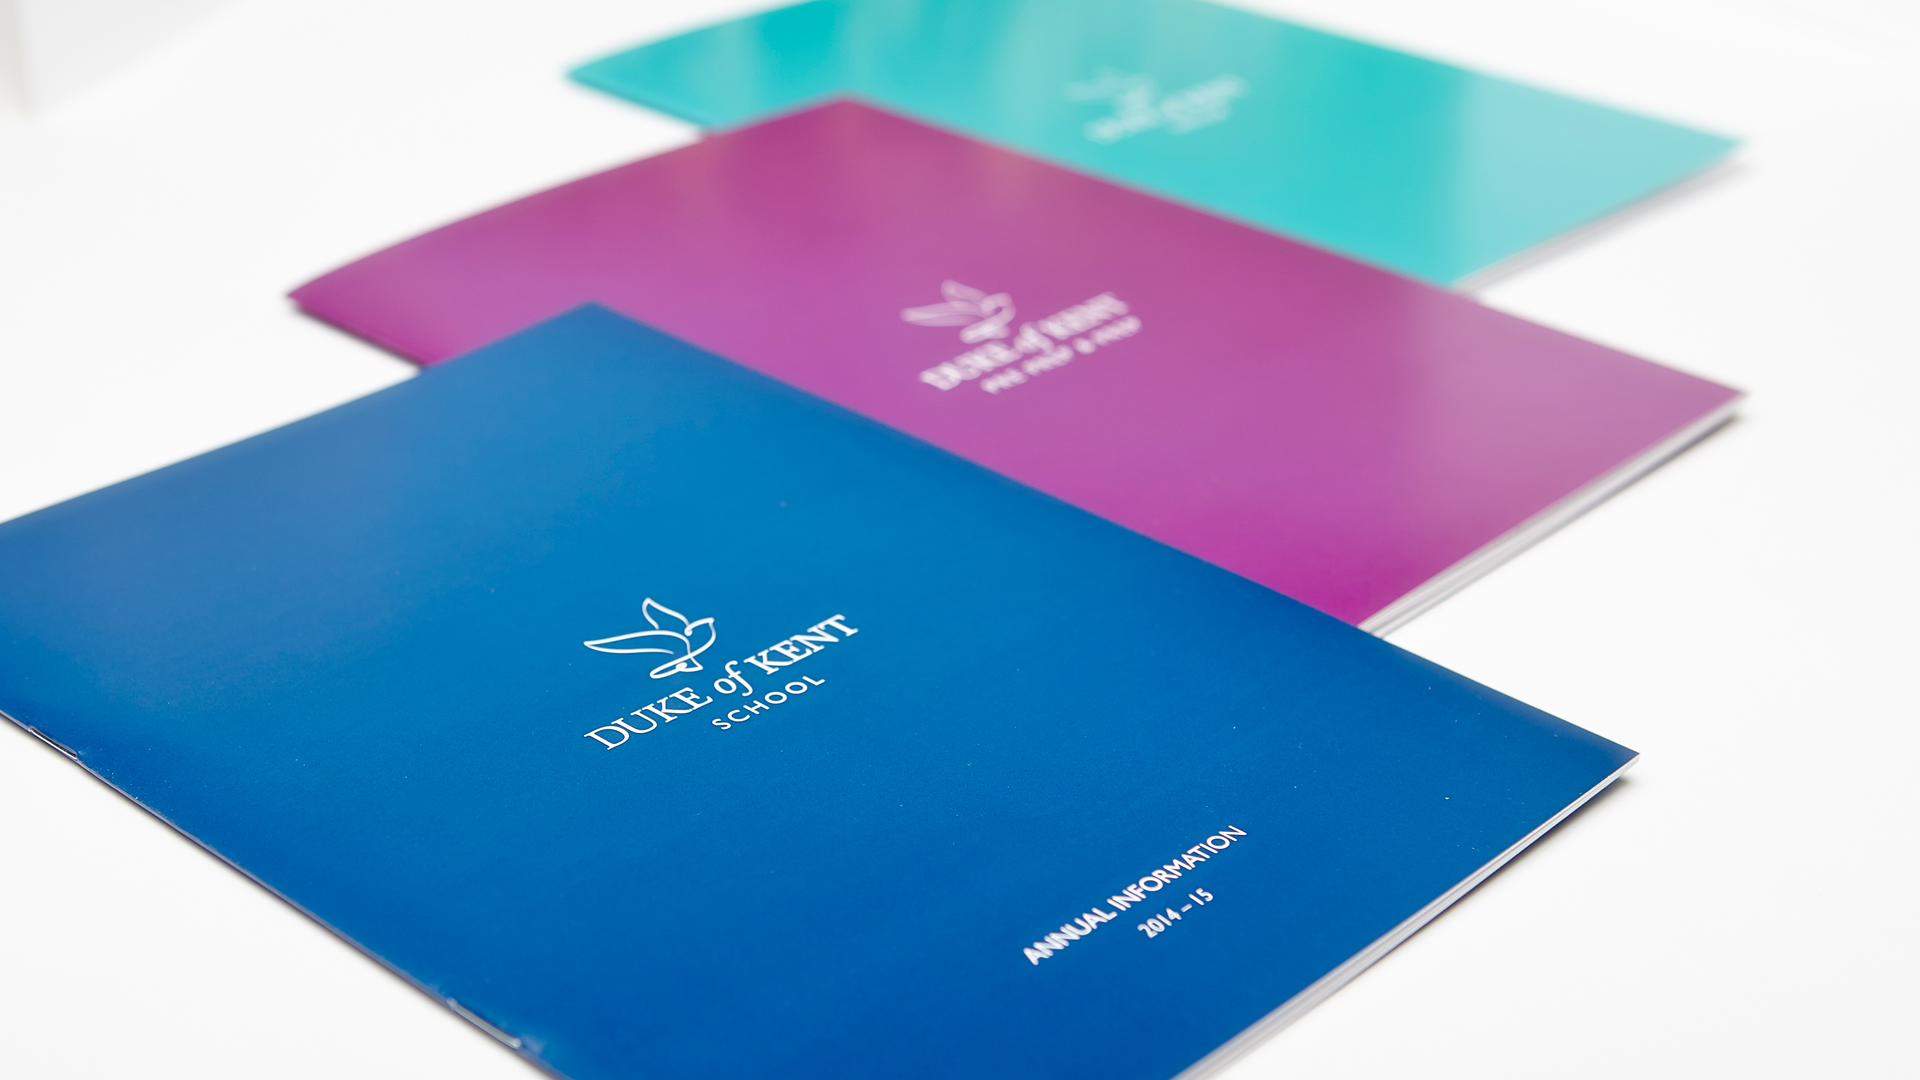 Duke Of Kent School branded logo prospectus layout no cover